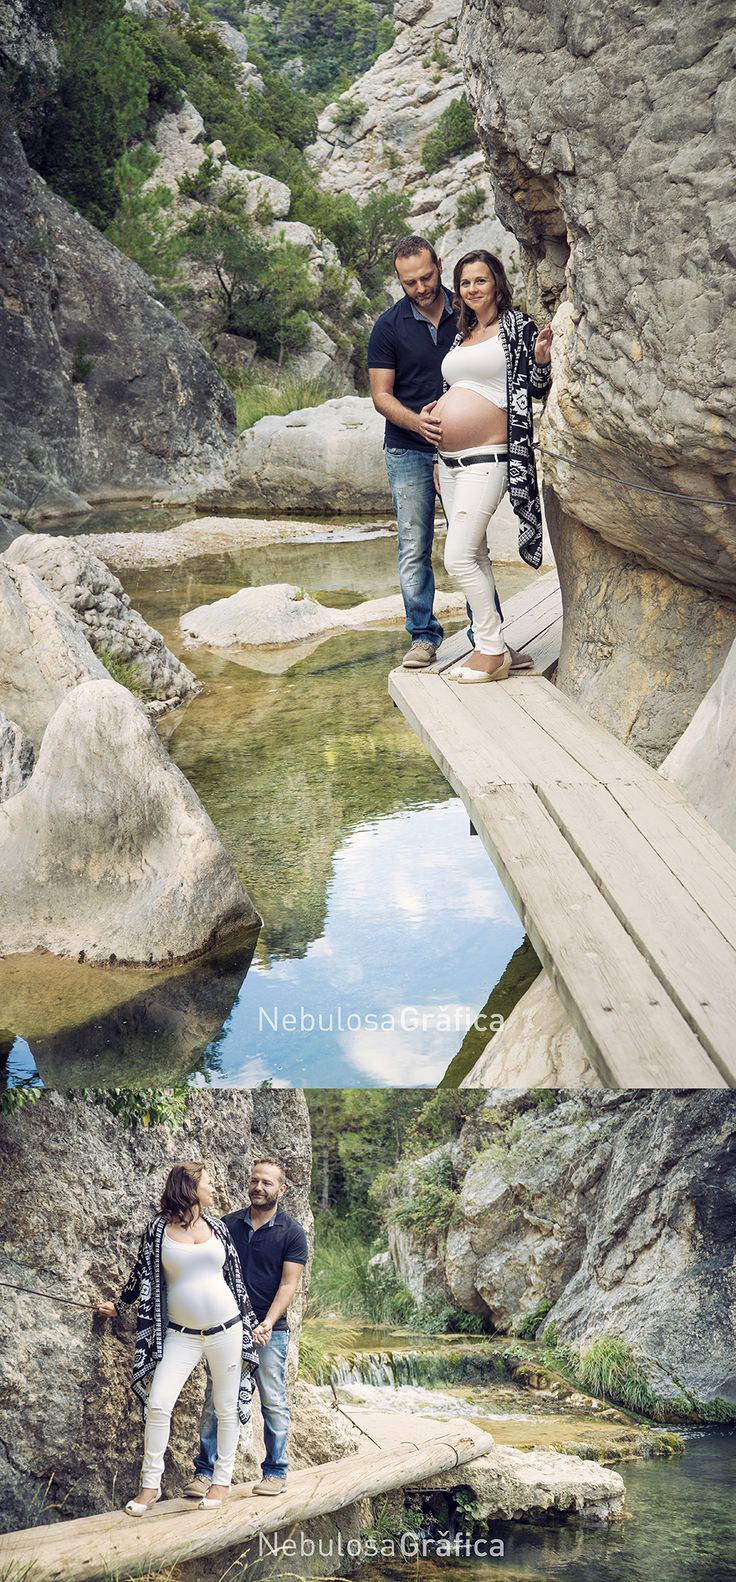 Prenatal photo session between mountains and rivers.